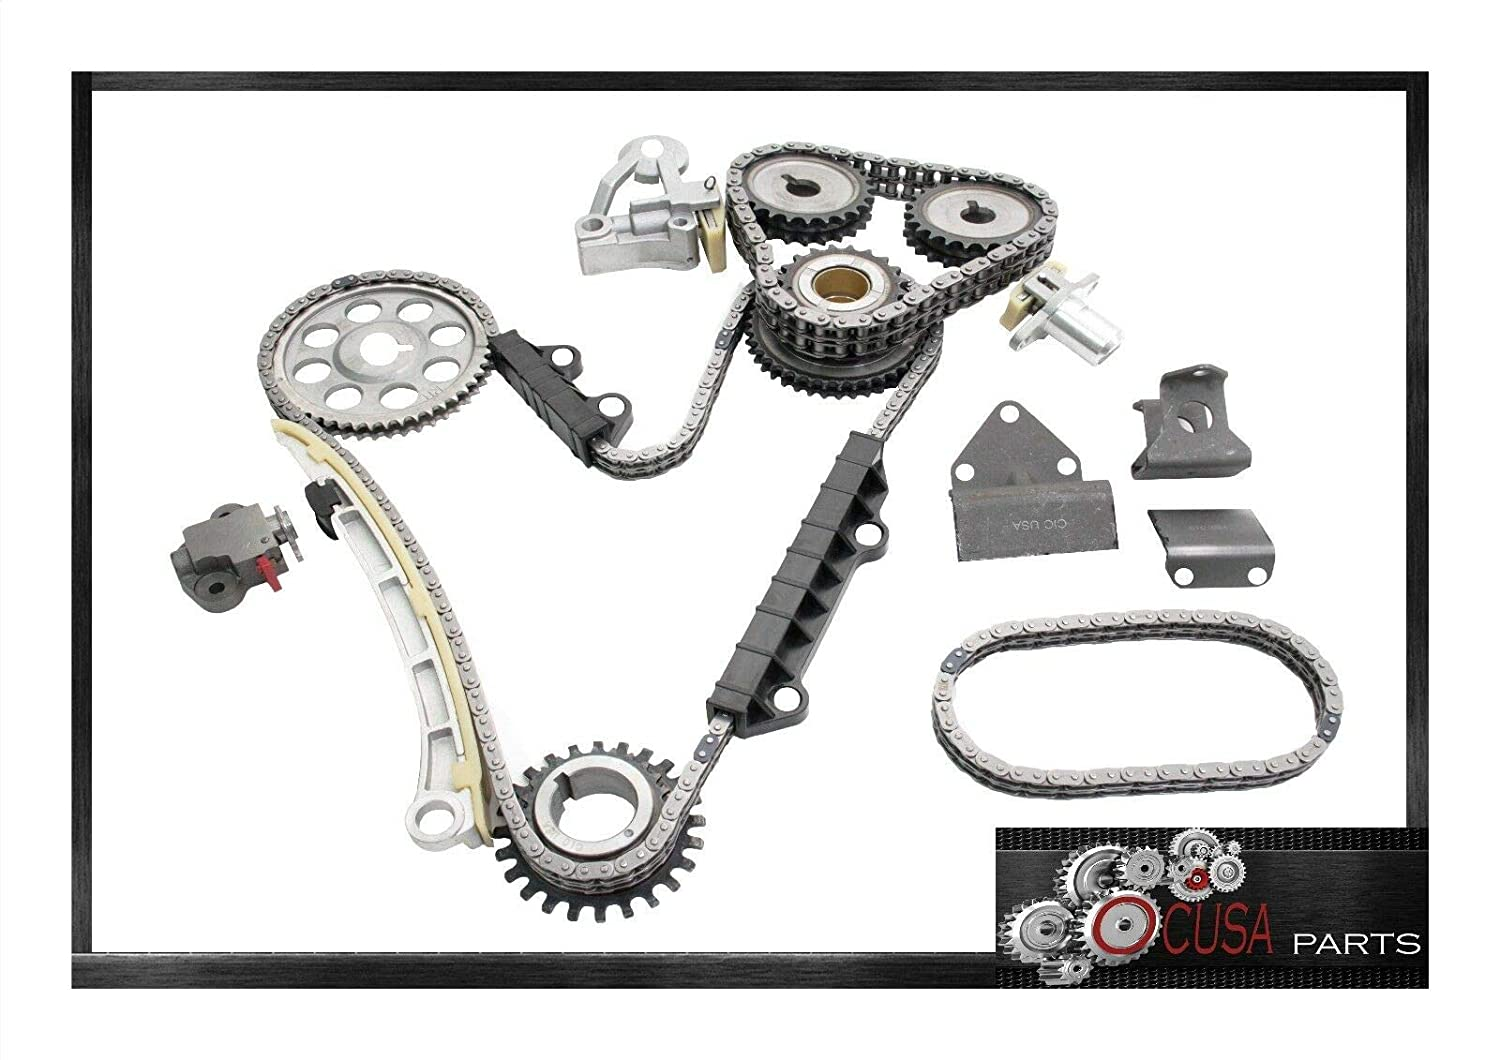 TIMING CHAIN KIT for SUZUKI GRAND VITARA 99-05 VITARA 2004 XL-7 02-06 2.5L 2.7L